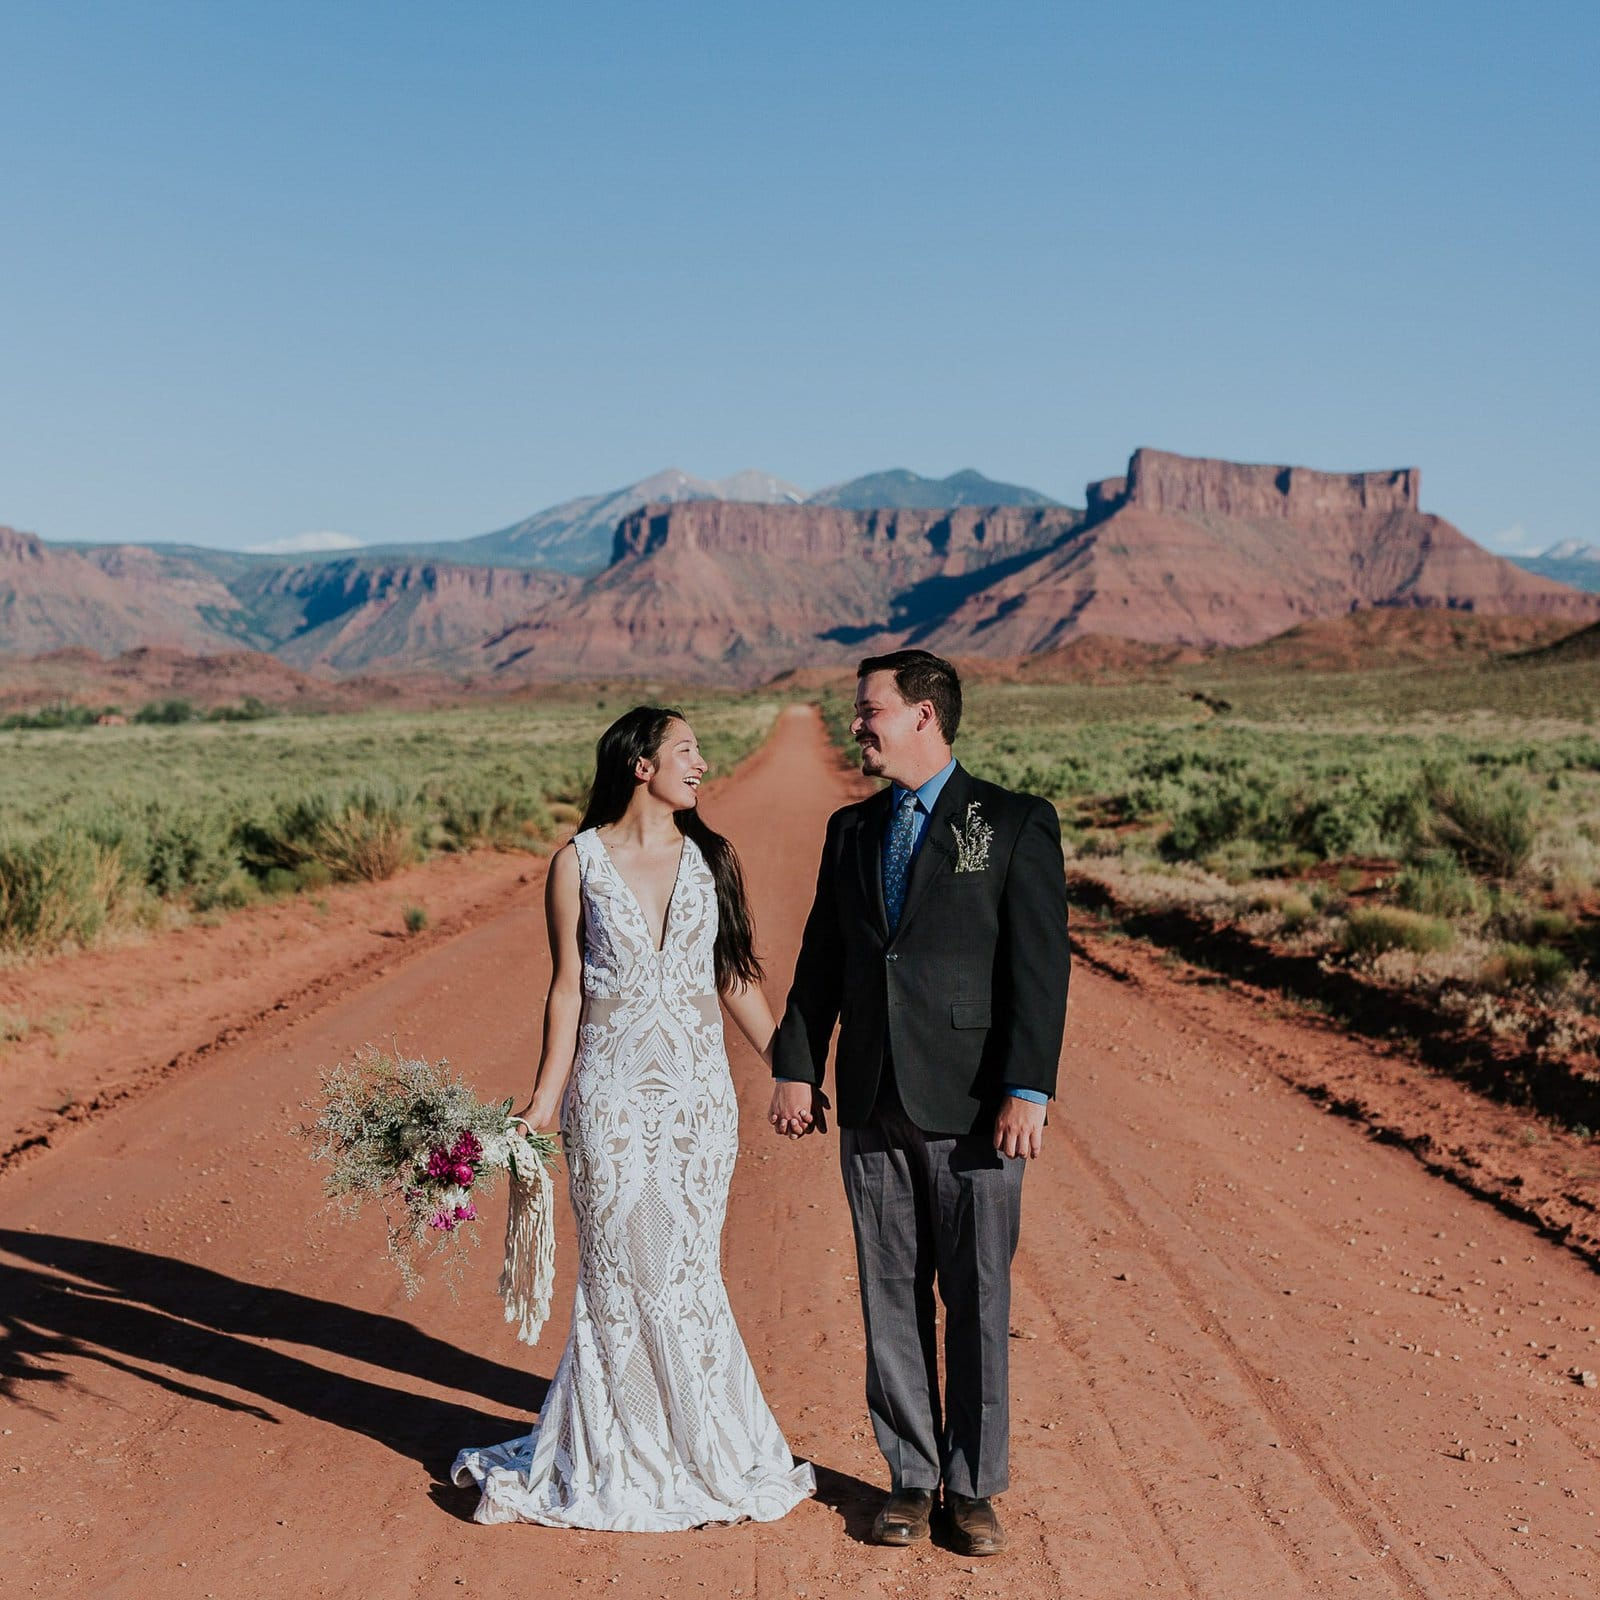 Bride and groom walk down the road of Moab, Utah.